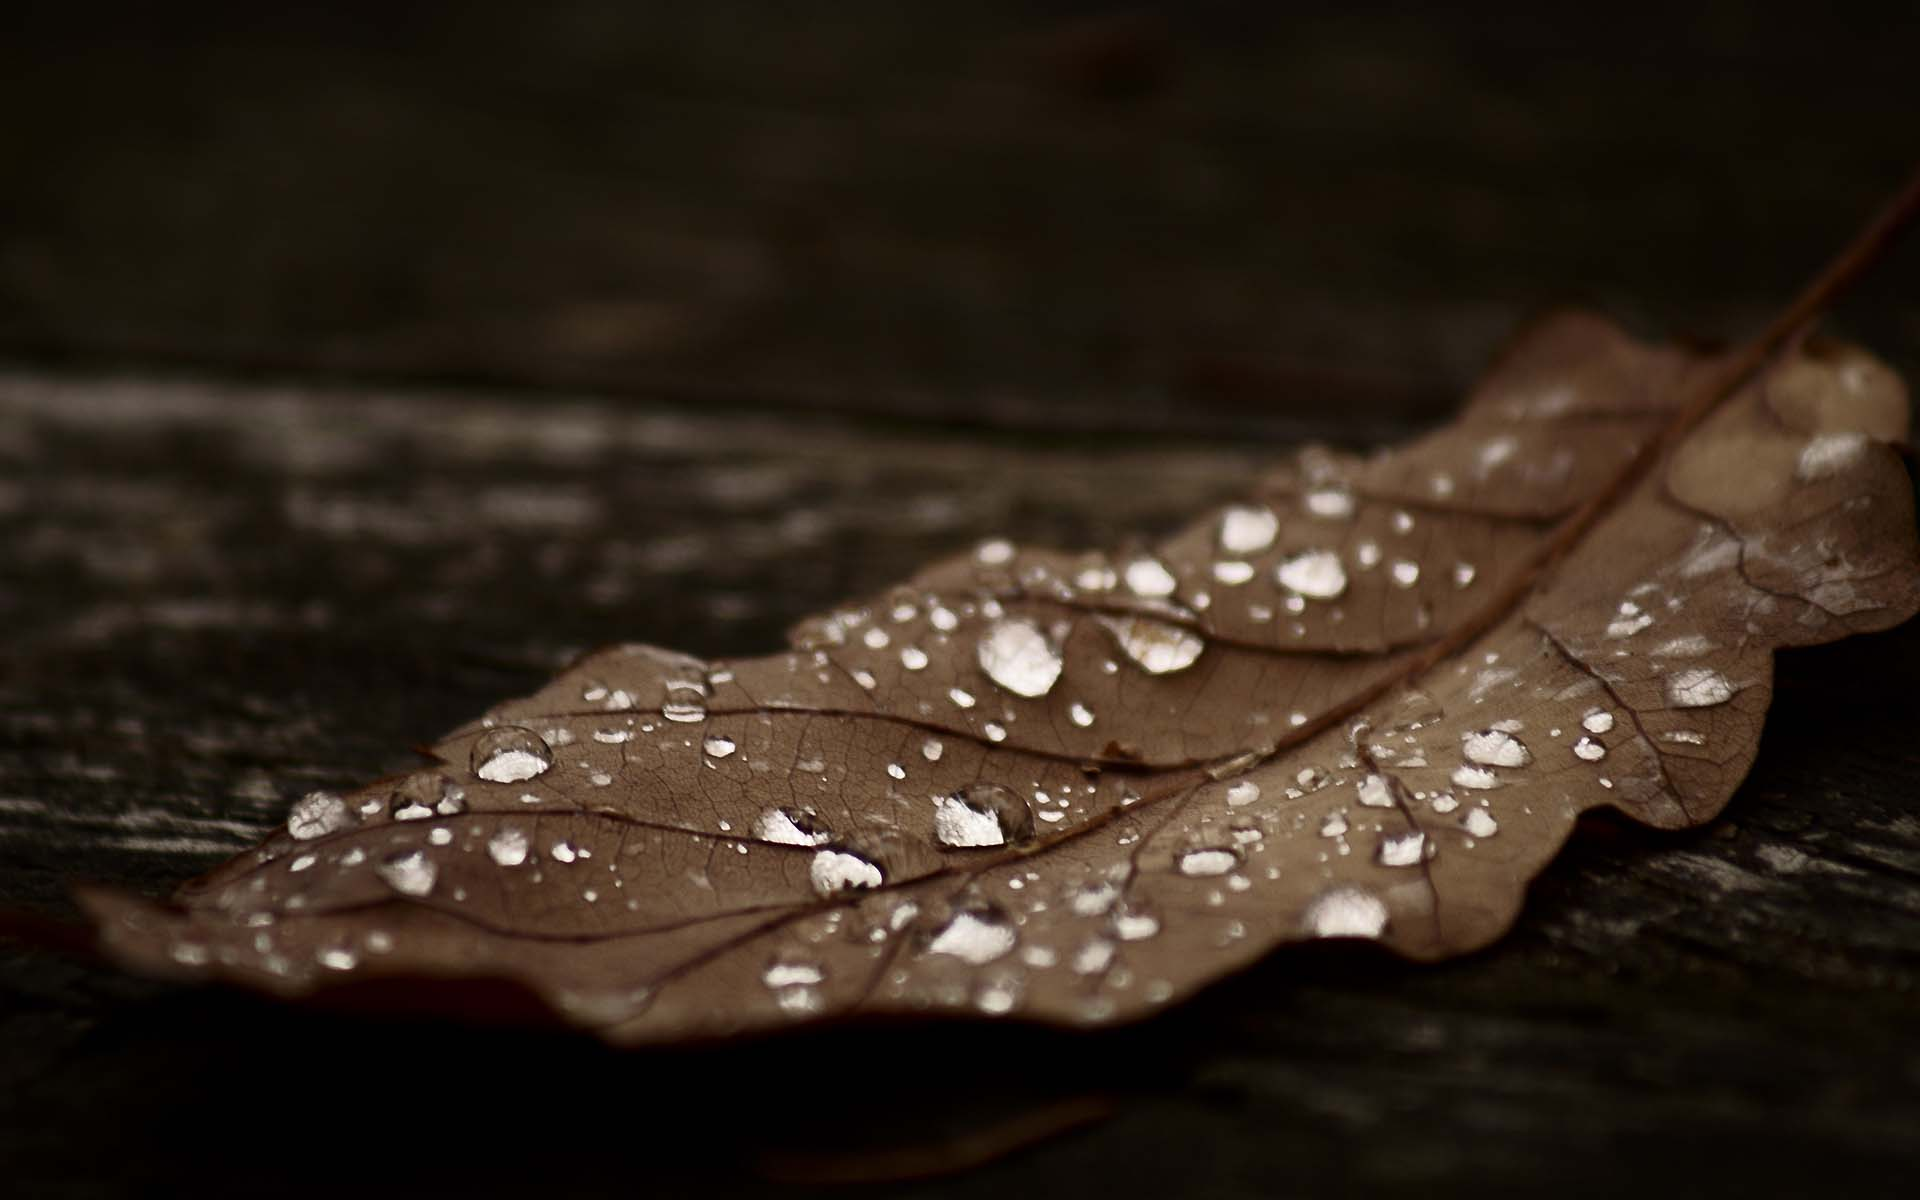 Dark_Autumn_Wallpaper